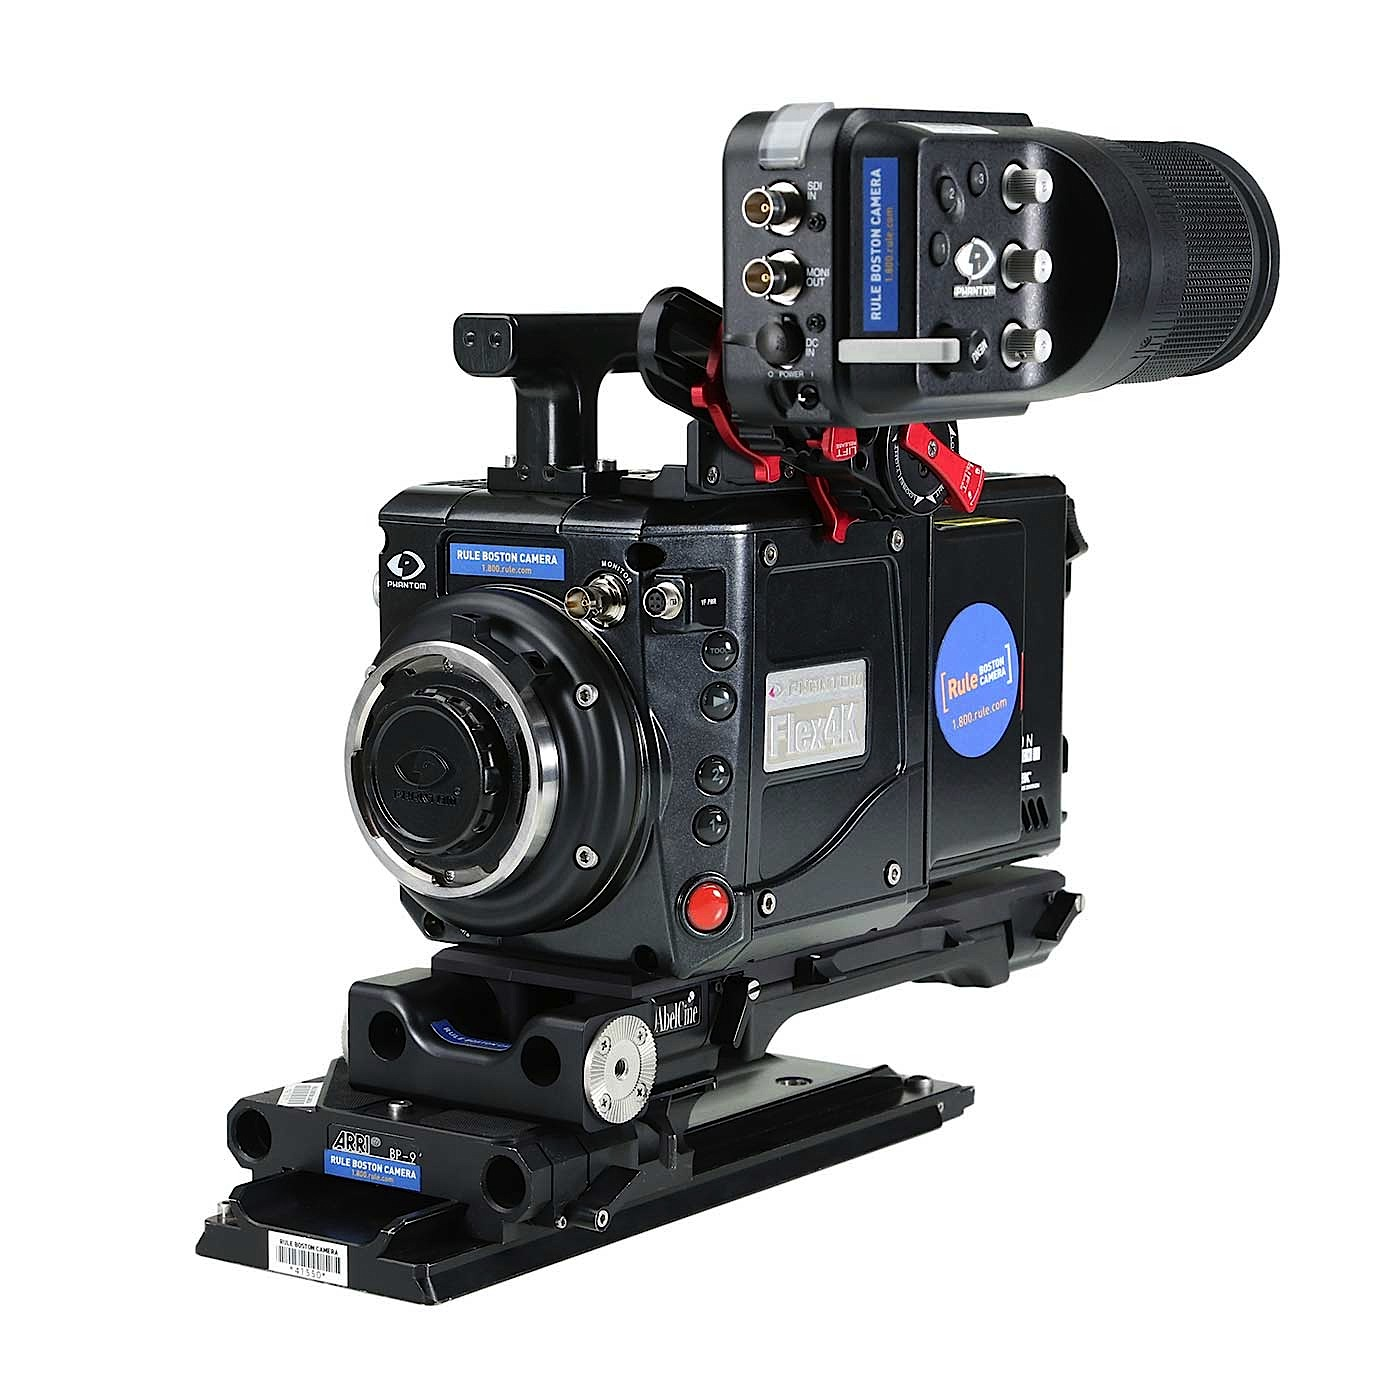 Phantom Flex 4K High Speed Digital Cinema Camera